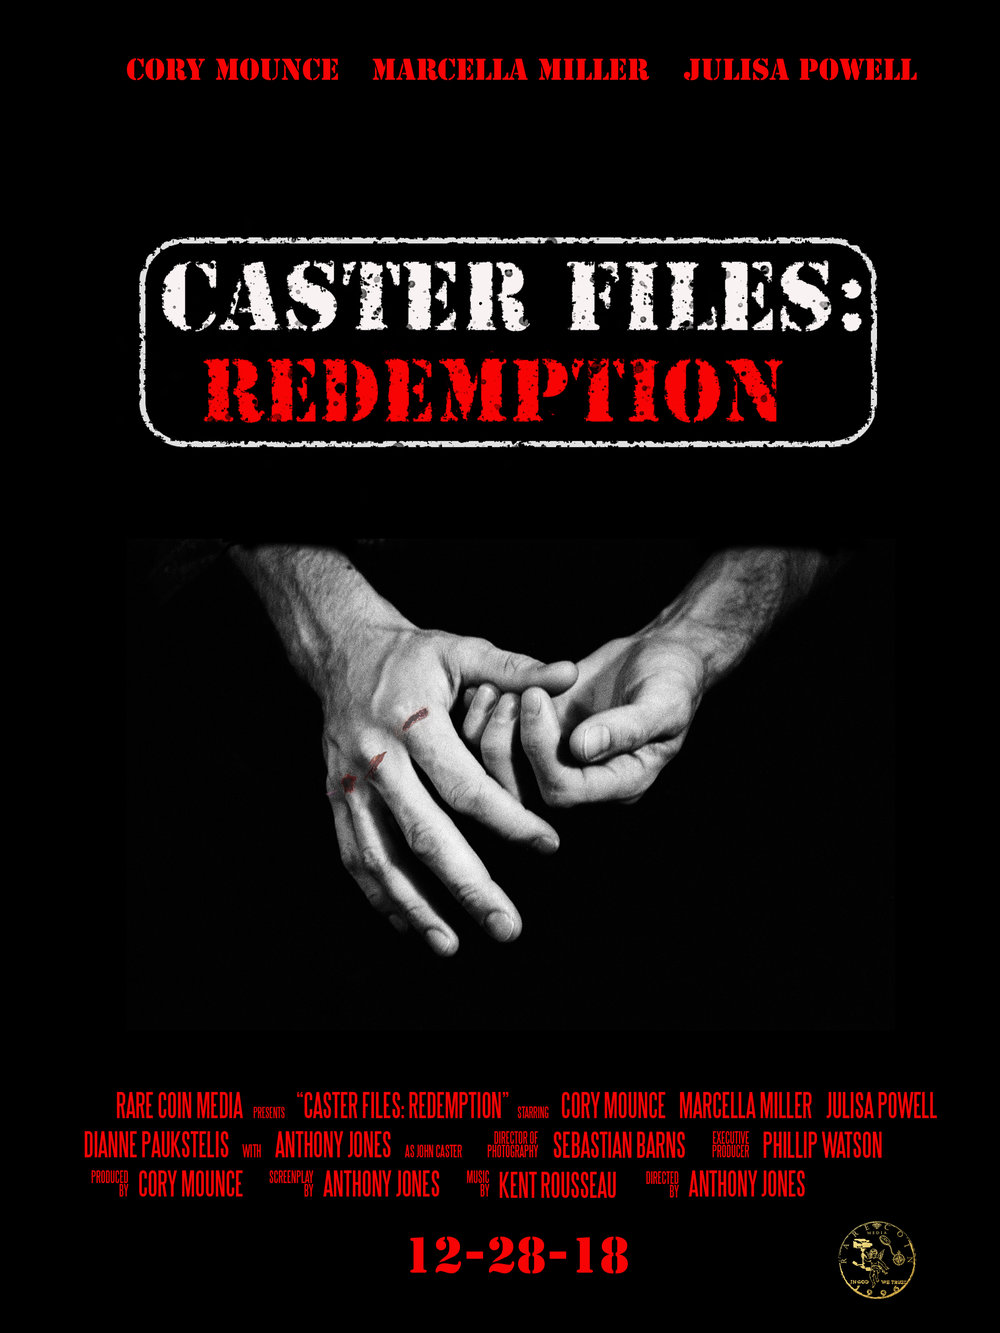 """Caster Files: Redemption - Caster Files: Redemption [2018] {Short Film} - Producer, Writer, Director [post-production]For all of you who have asked for more John Caster we give you Caster Files Redemption! While no, it isn't a direct sequel, we still are proud to add this as the next chronological story in the """"Casterverse""""!Caster Files: Redemption takes place a couple months after John Caster. The film is centered on James who is tricked into a therapy session to talk about an incident that happened a week prior."""